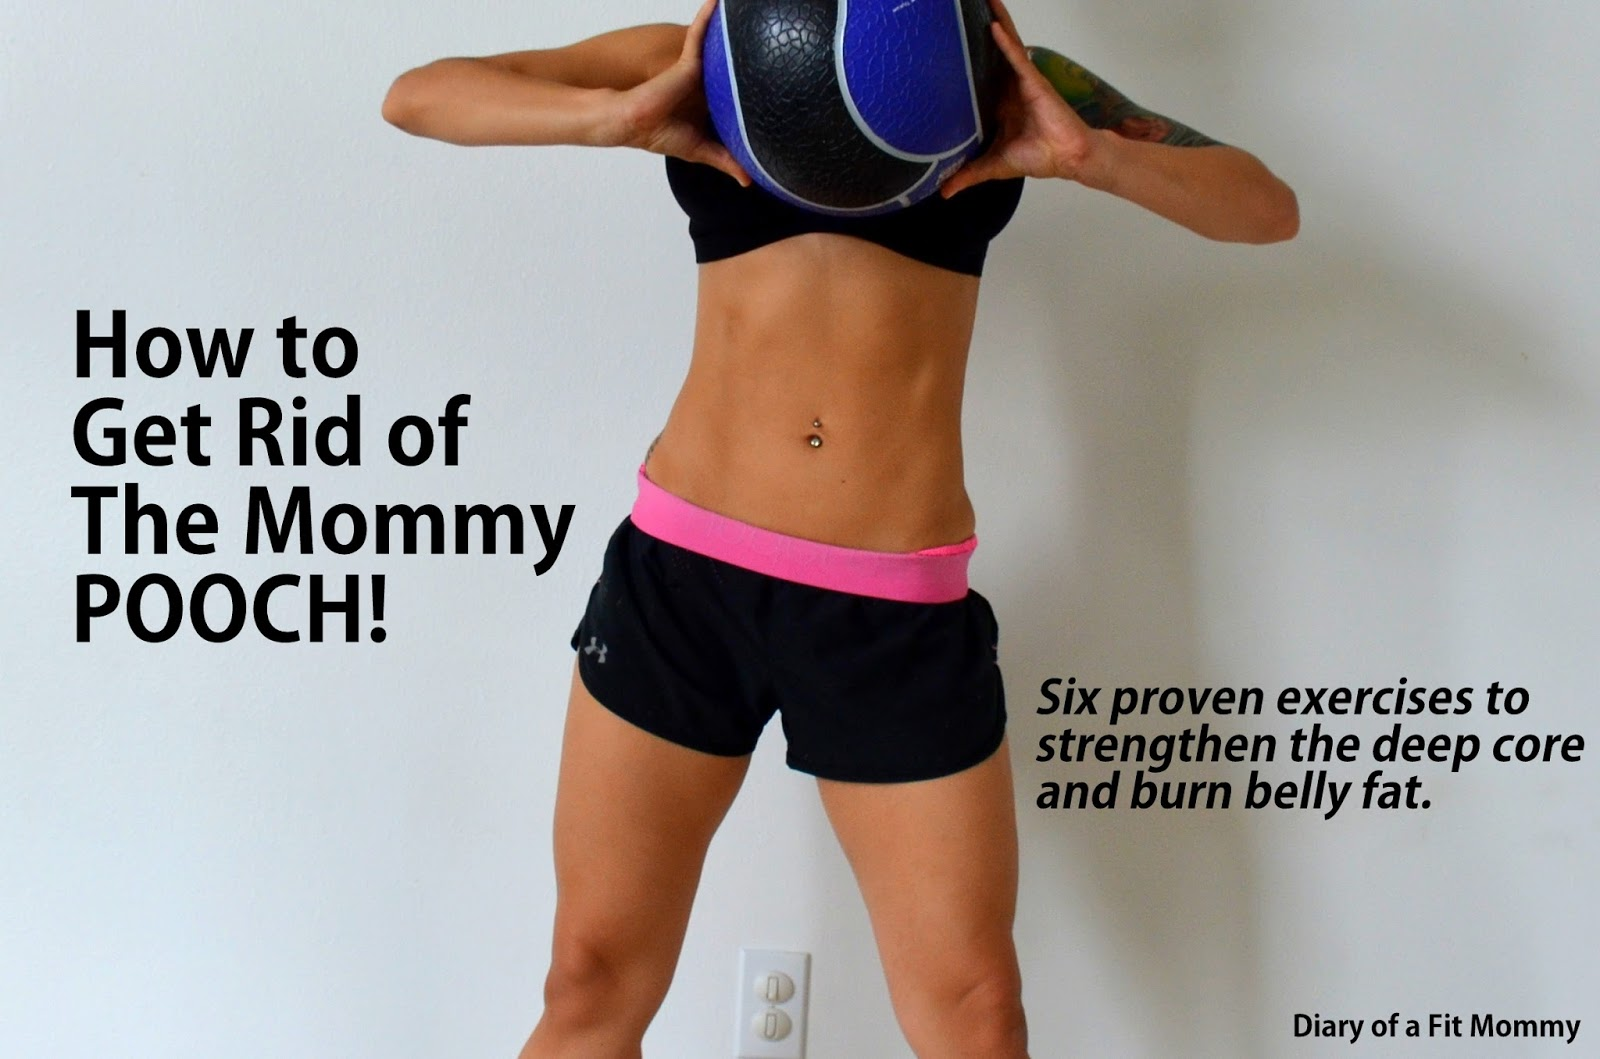 Diary of a fit mommy june 2015 your guide to getting rid of the mommy tummy pooch ccuart Gallery